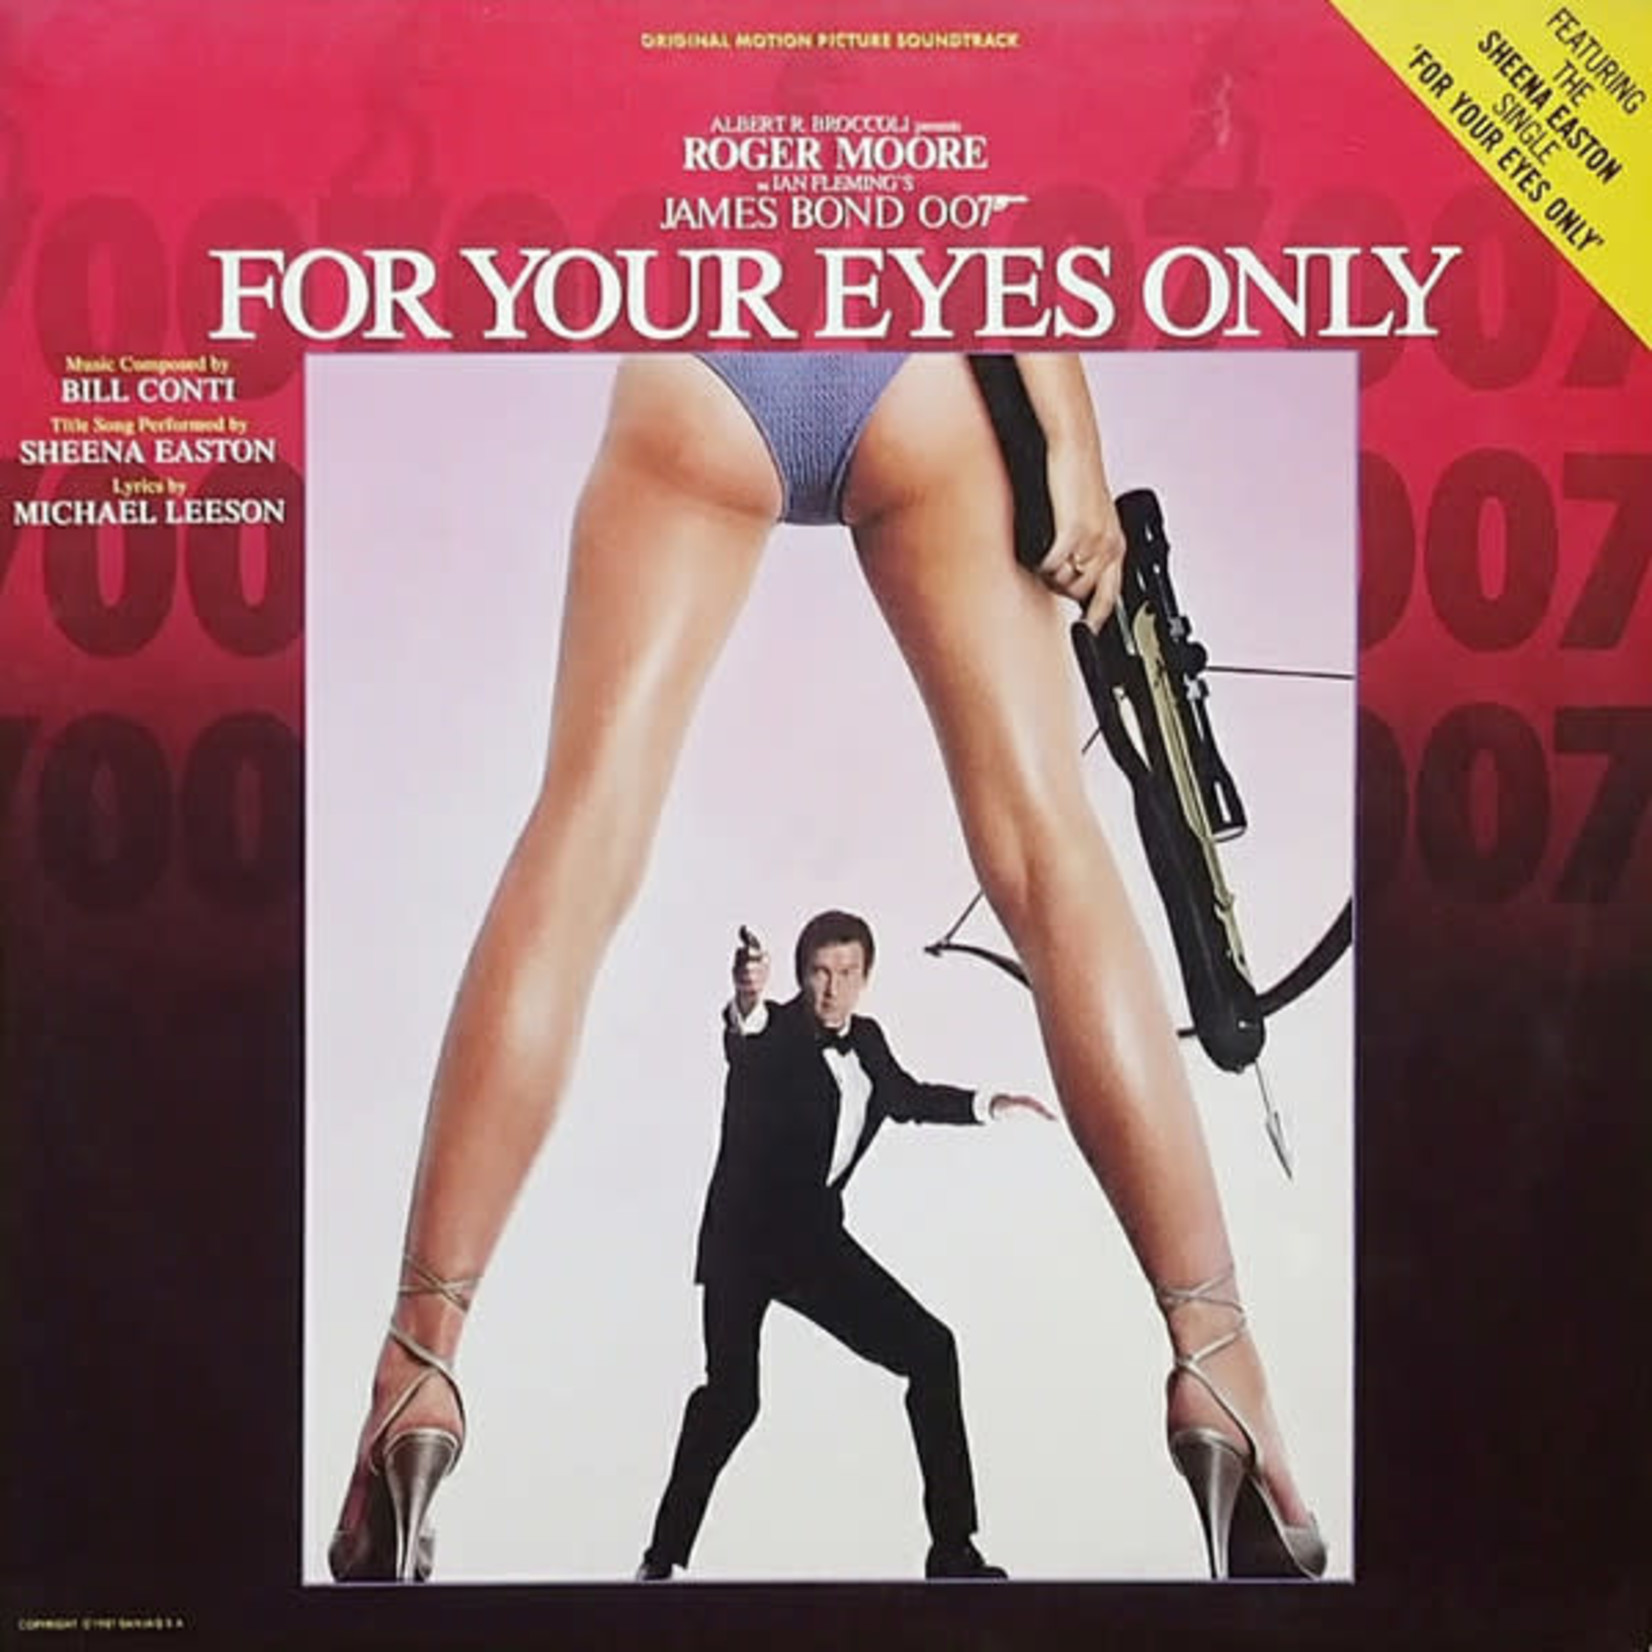 [Vintage] Conti, Bill: James Bond: For Your Eyes Only (Soundtrack)